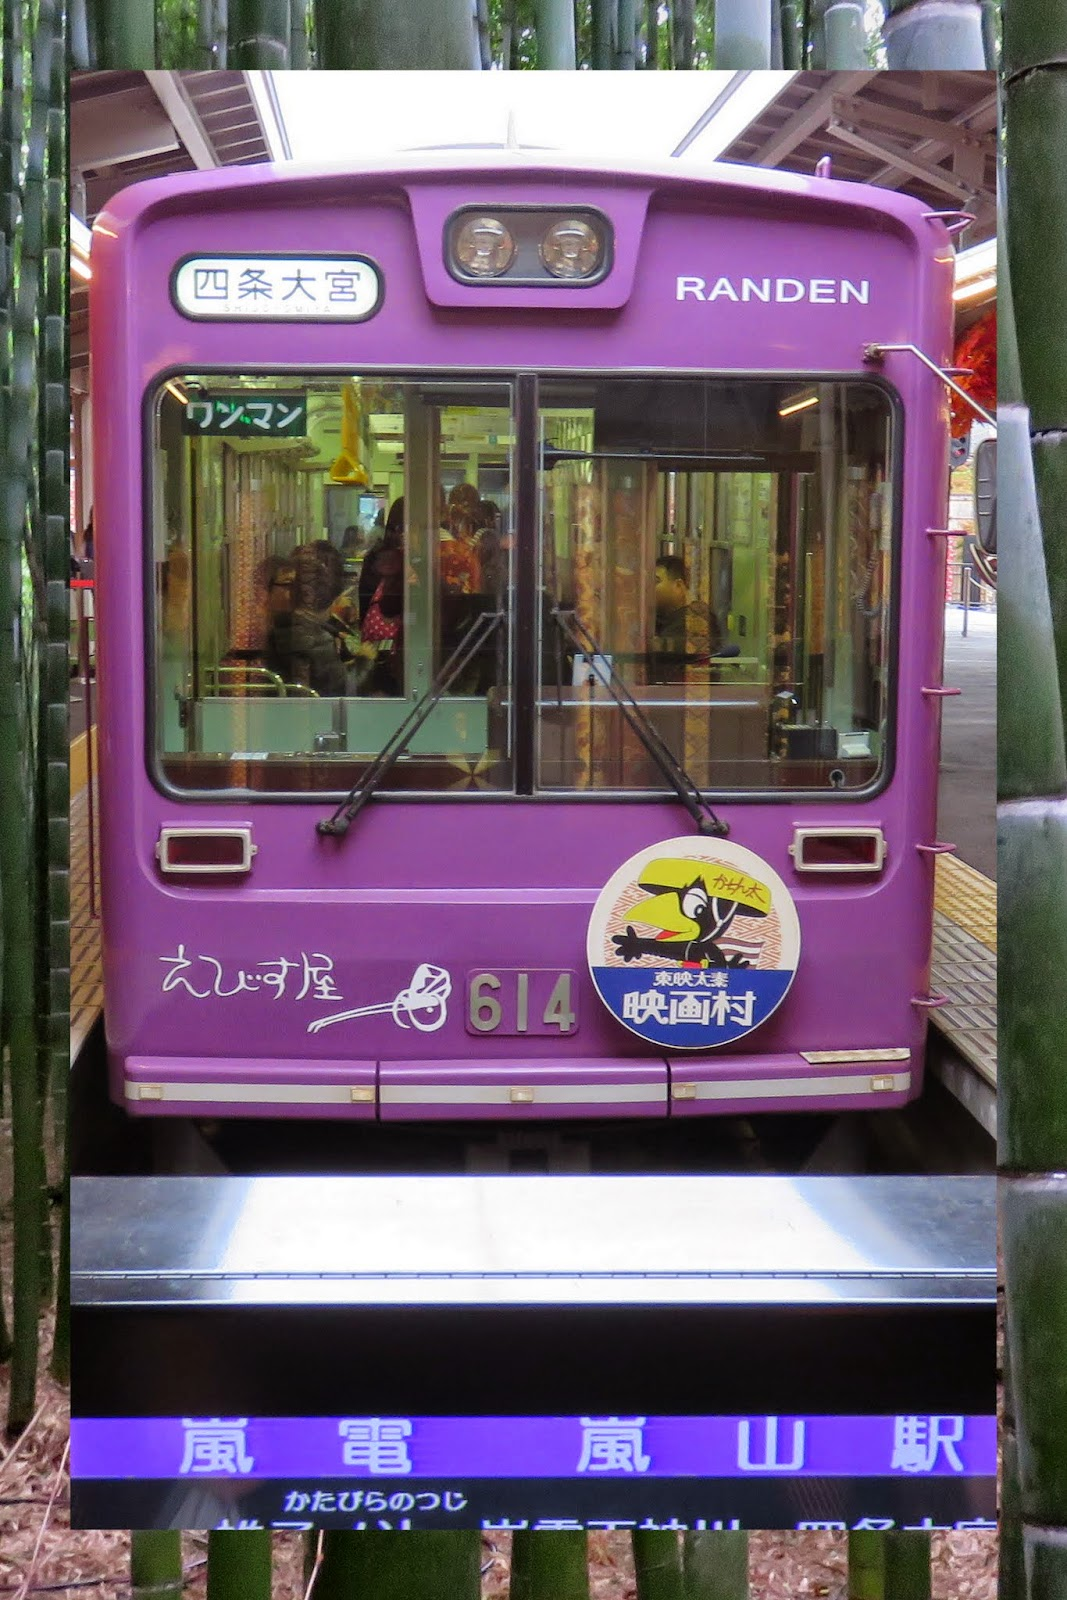 Randen Street Car - Kyoto, Japan